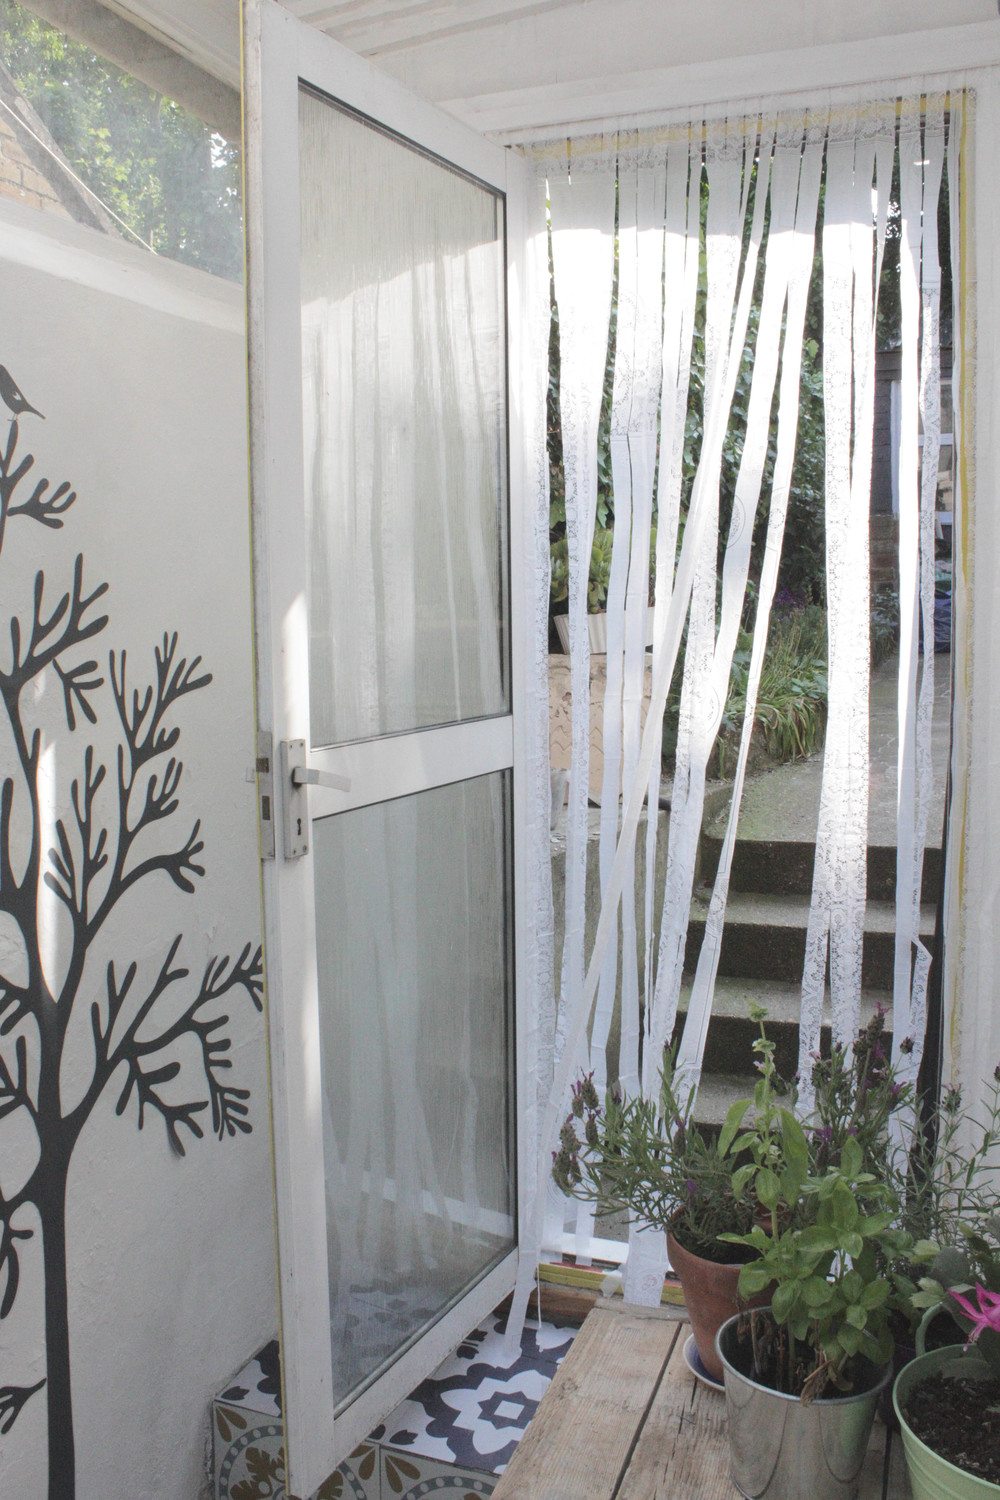 Bug screen curtain, tutorial by hester's handmade home